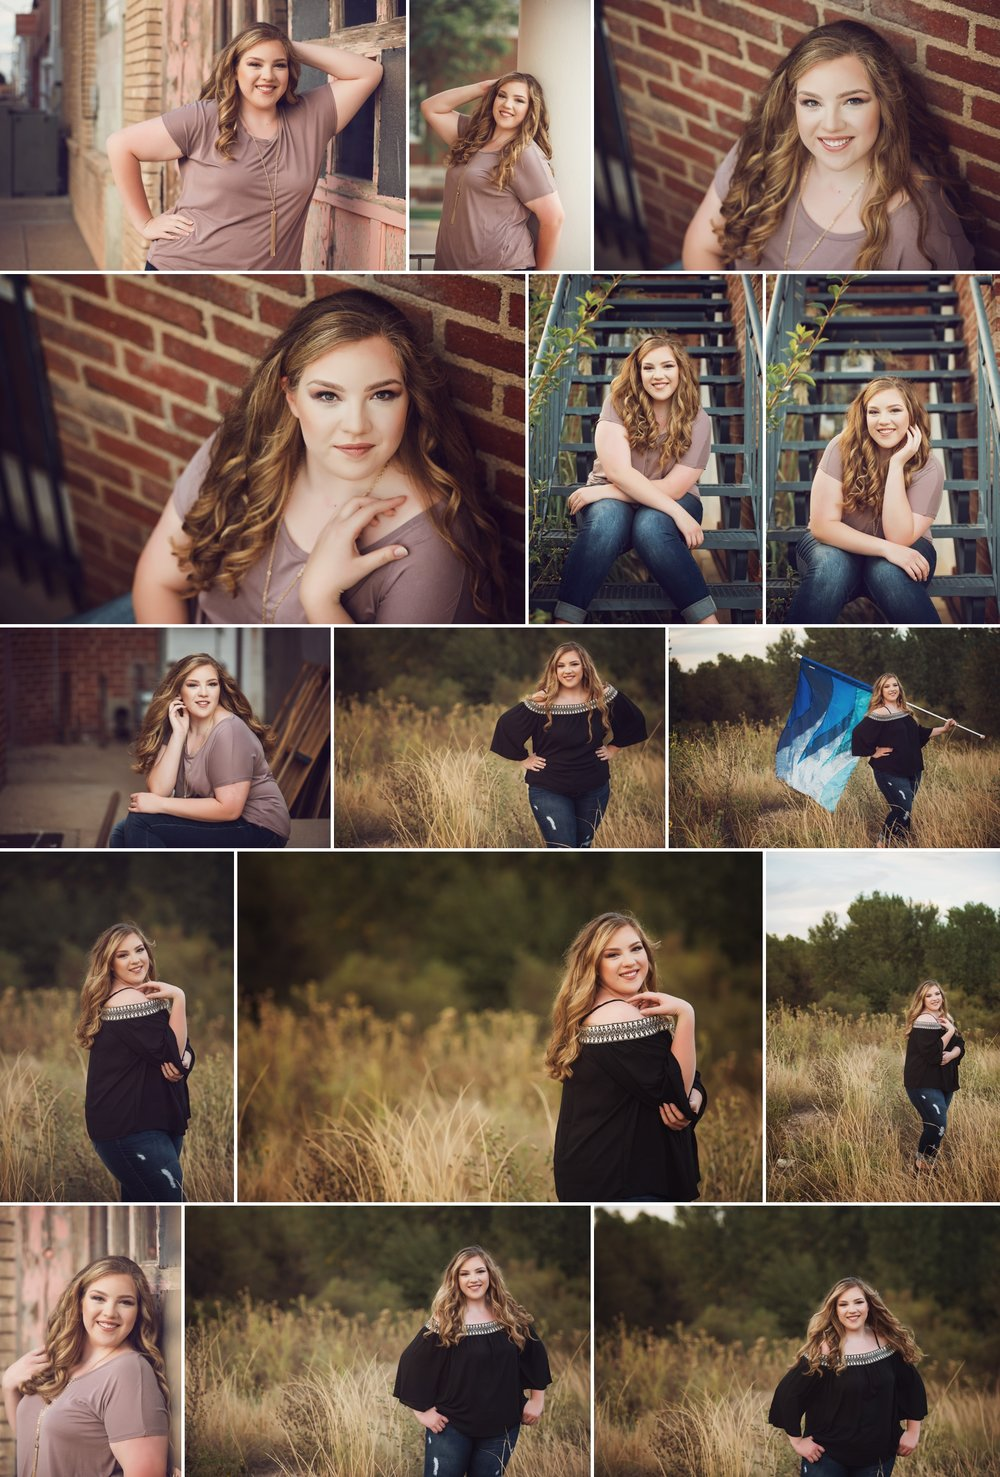 southwest-kansas-senior-photography 1.jpg